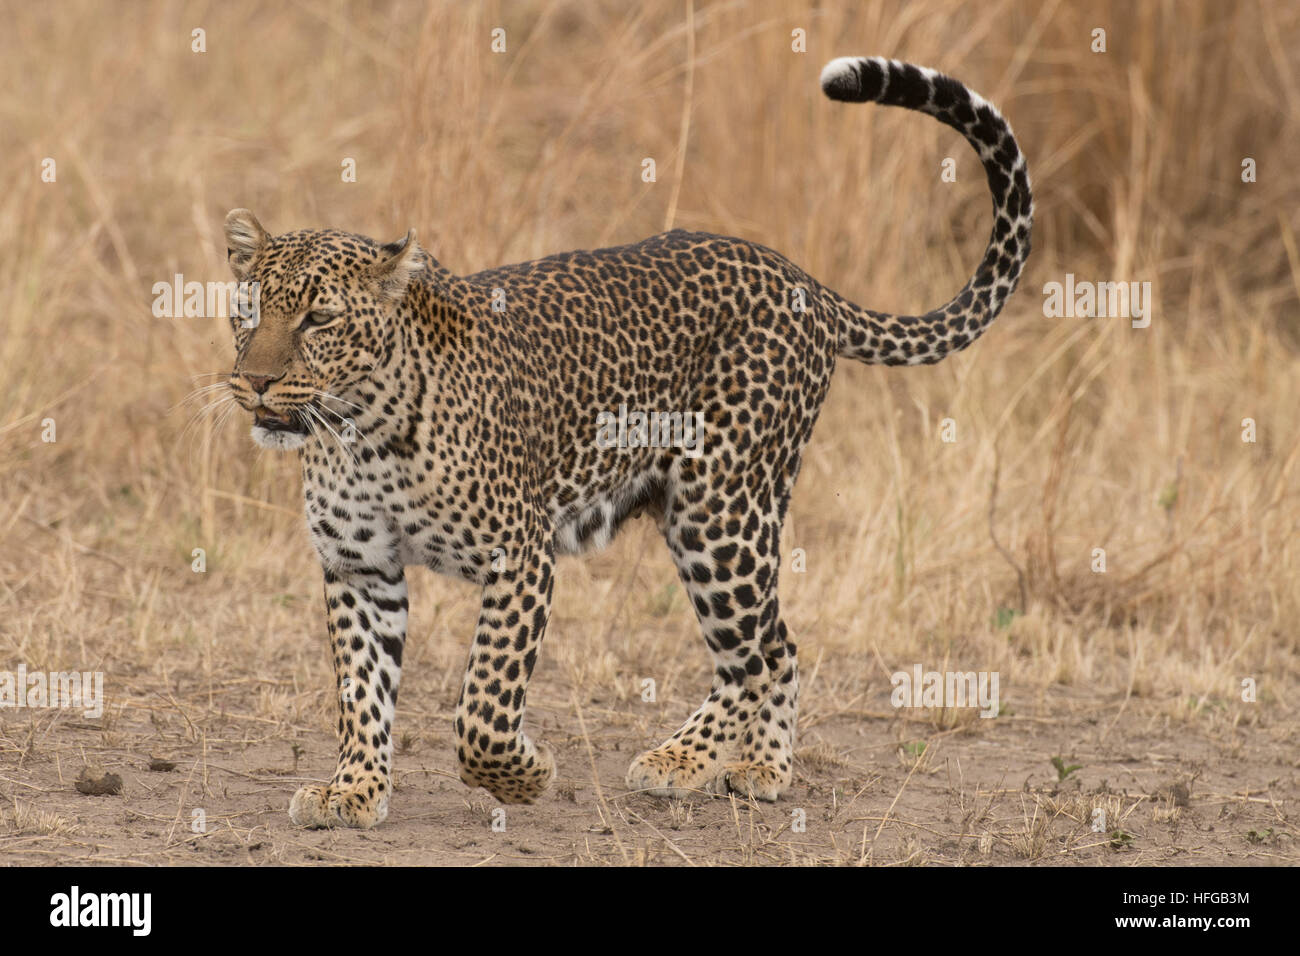 Leopard walking and looking ahead - Stock Image